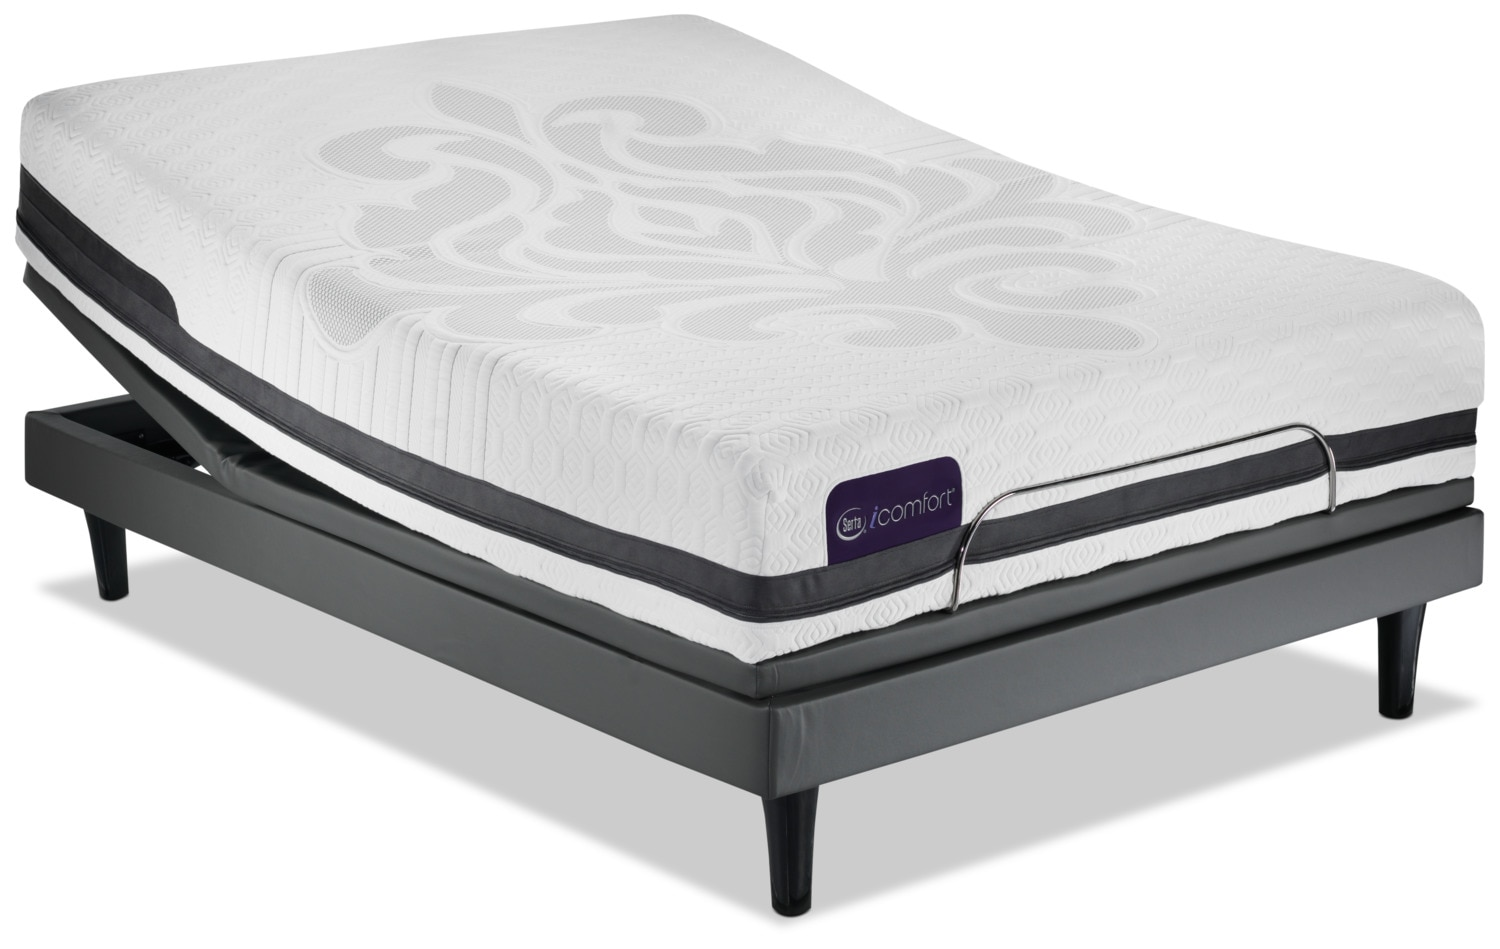 Serta iComfort Eco Peacefulness Plush Queen Mattress/Motion Perfect III Complete Adjustable Base